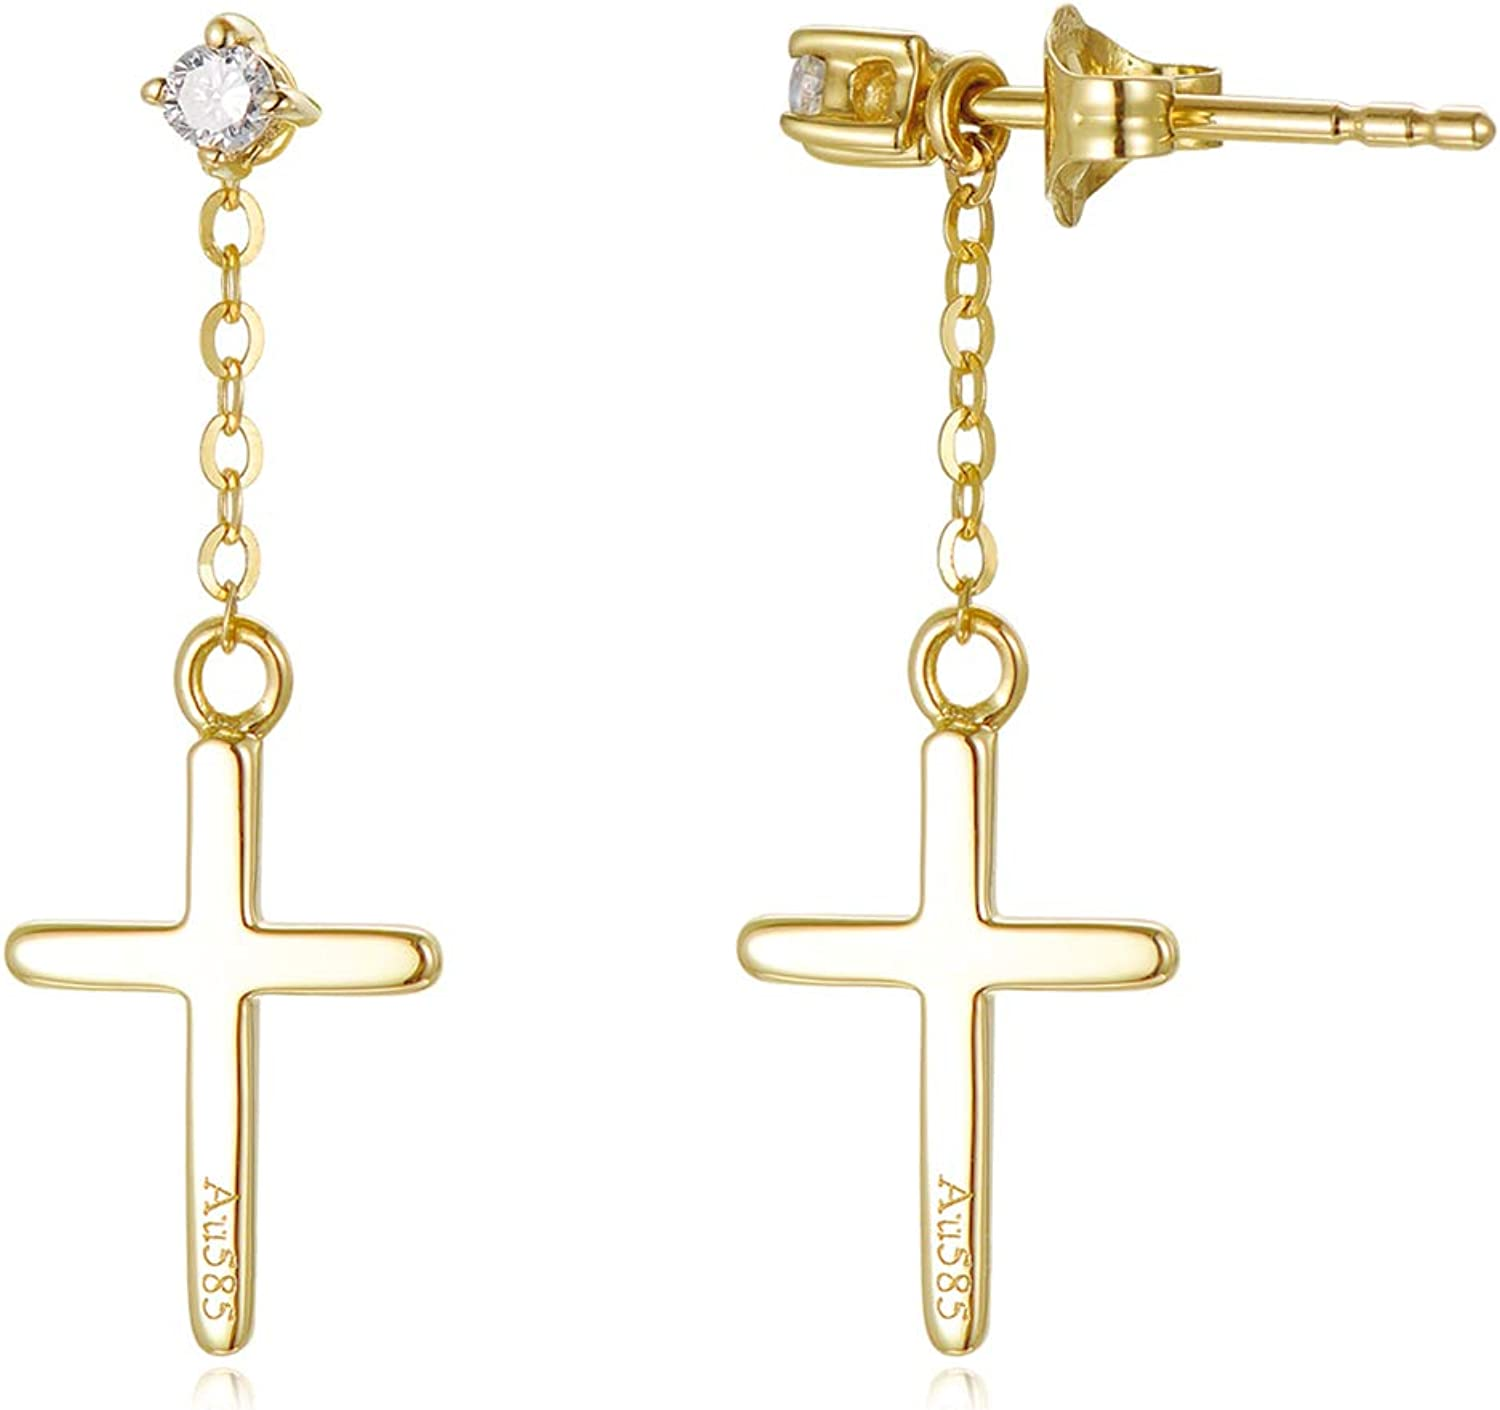 14k Gold Synthetic Moissanite Cross Earrings for Women, Solid Gold Stud Drop Earring Religious Jewelry Gifts for Her